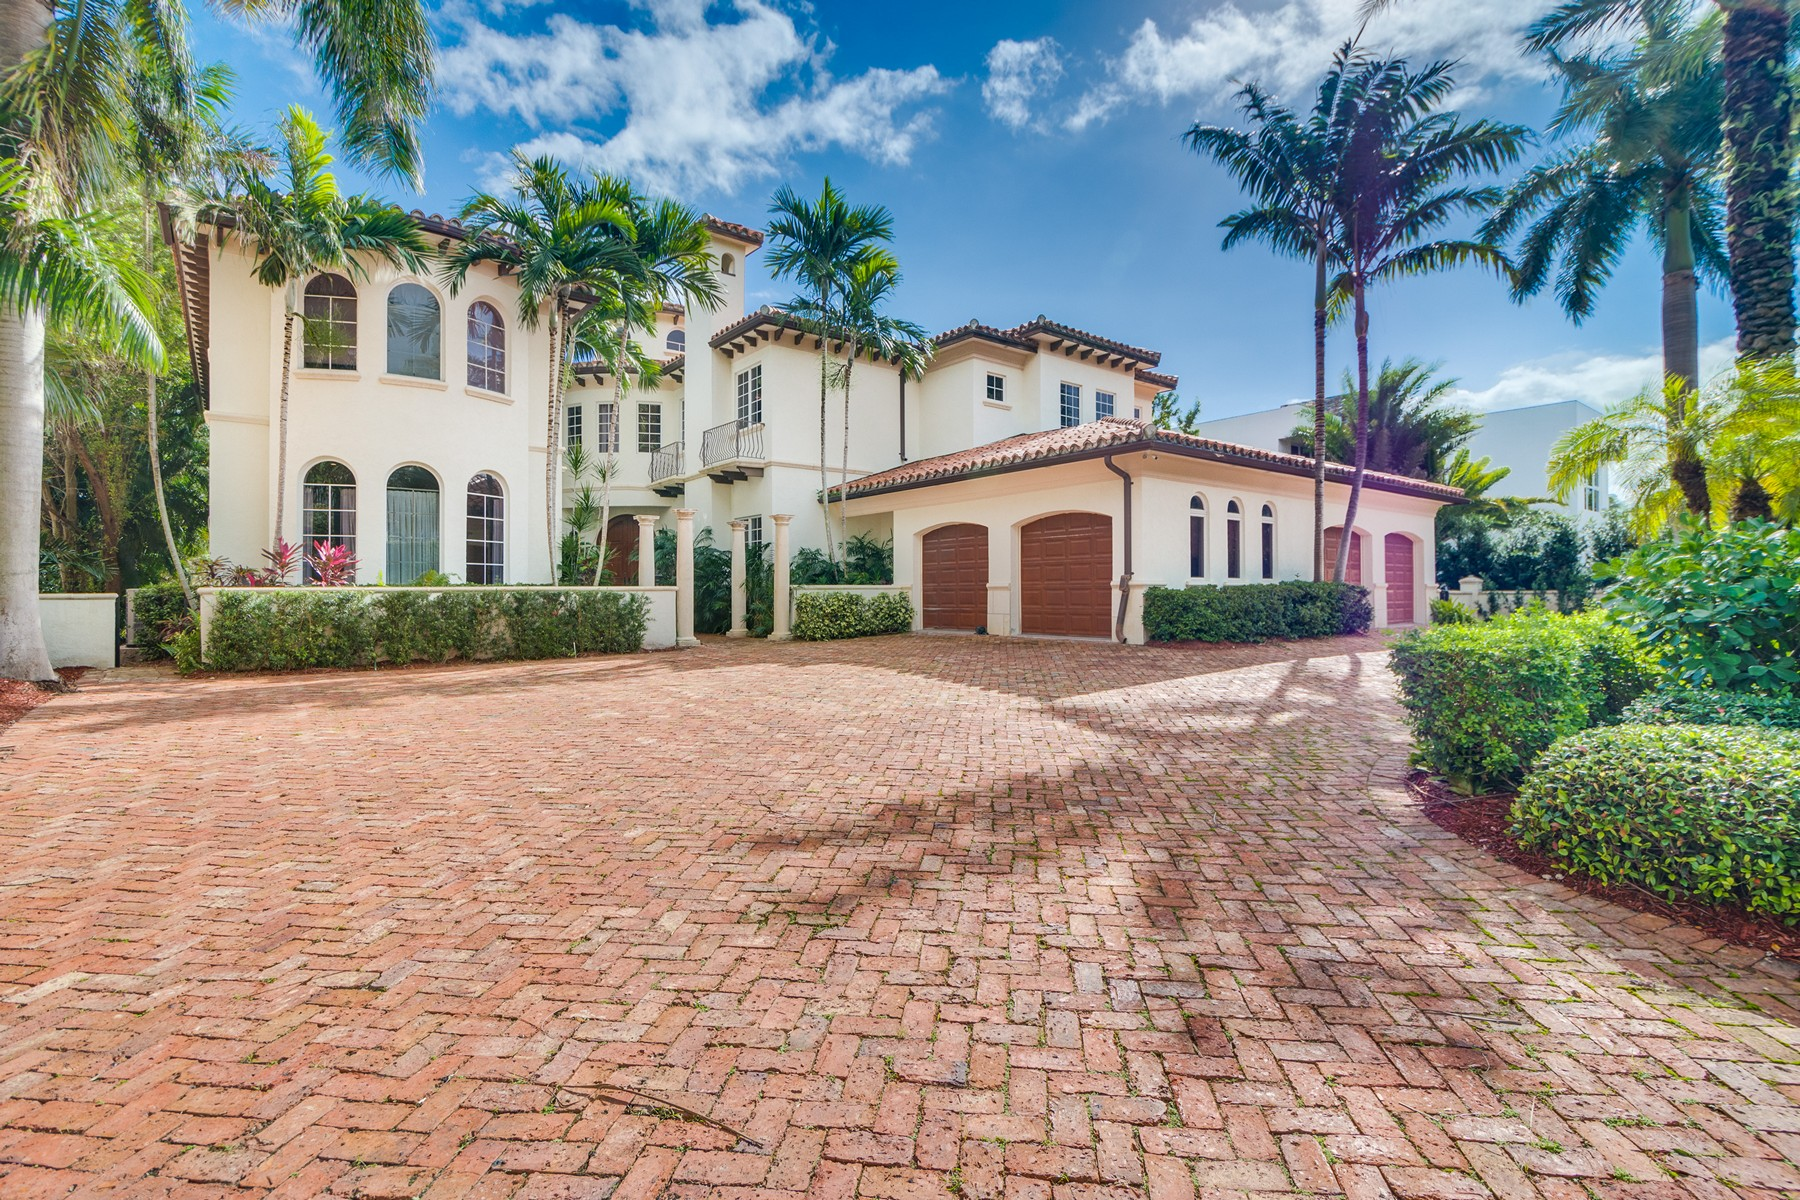 Single Family Home for Sale at 520 N Island Dr Golden Beach, Florida 33160 United States